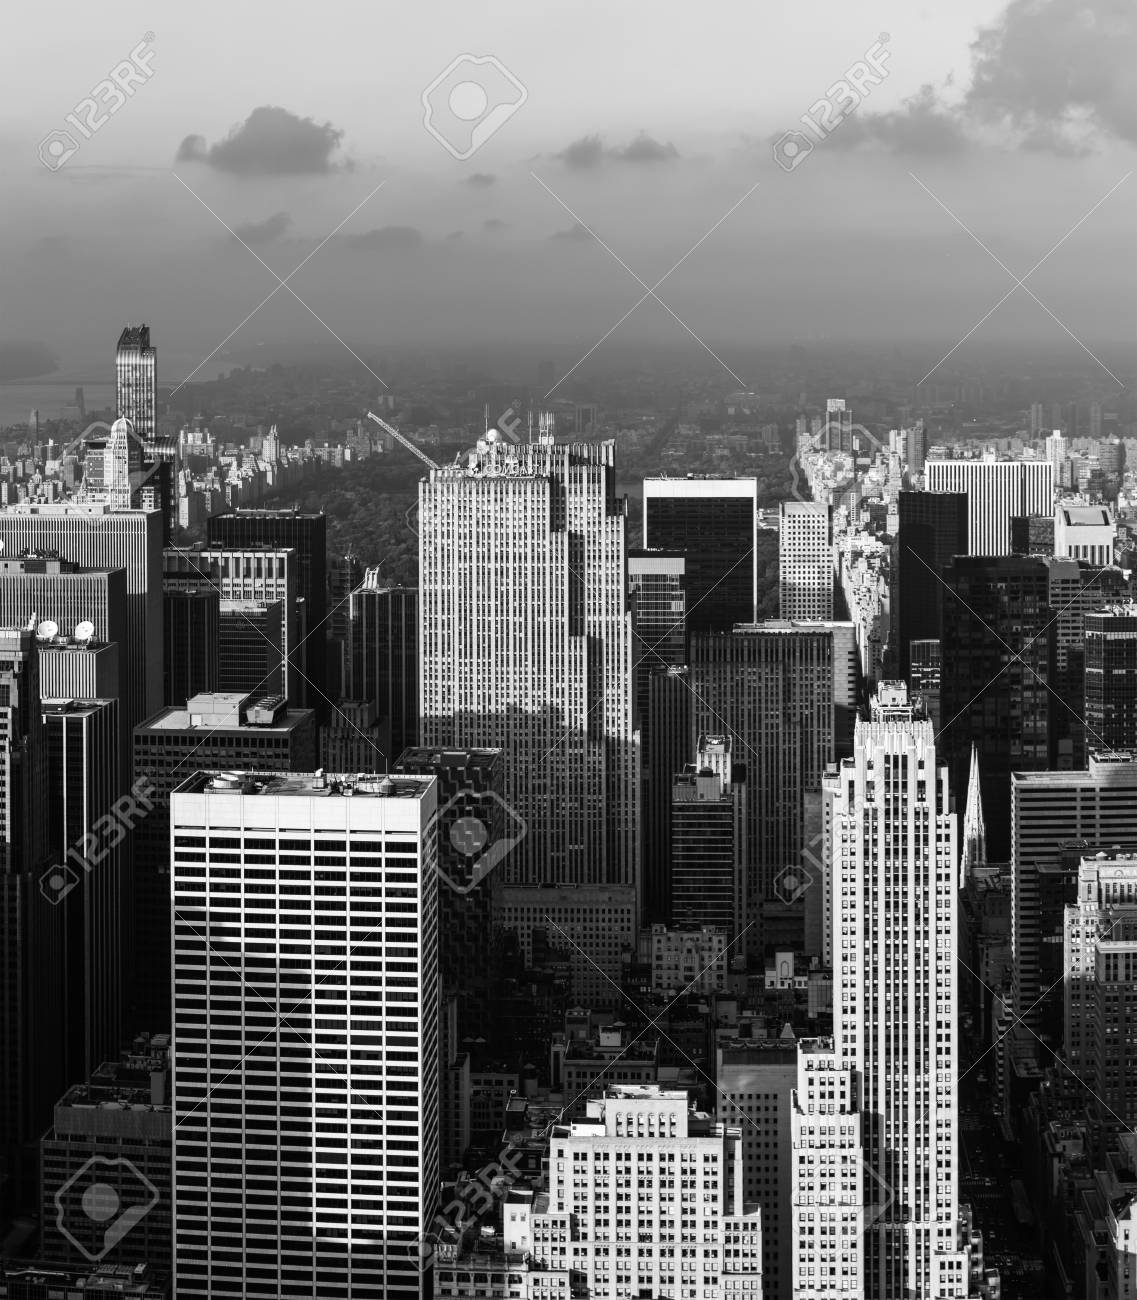 New York Usa Sep 17 2017 Black And White Image Of Streets And